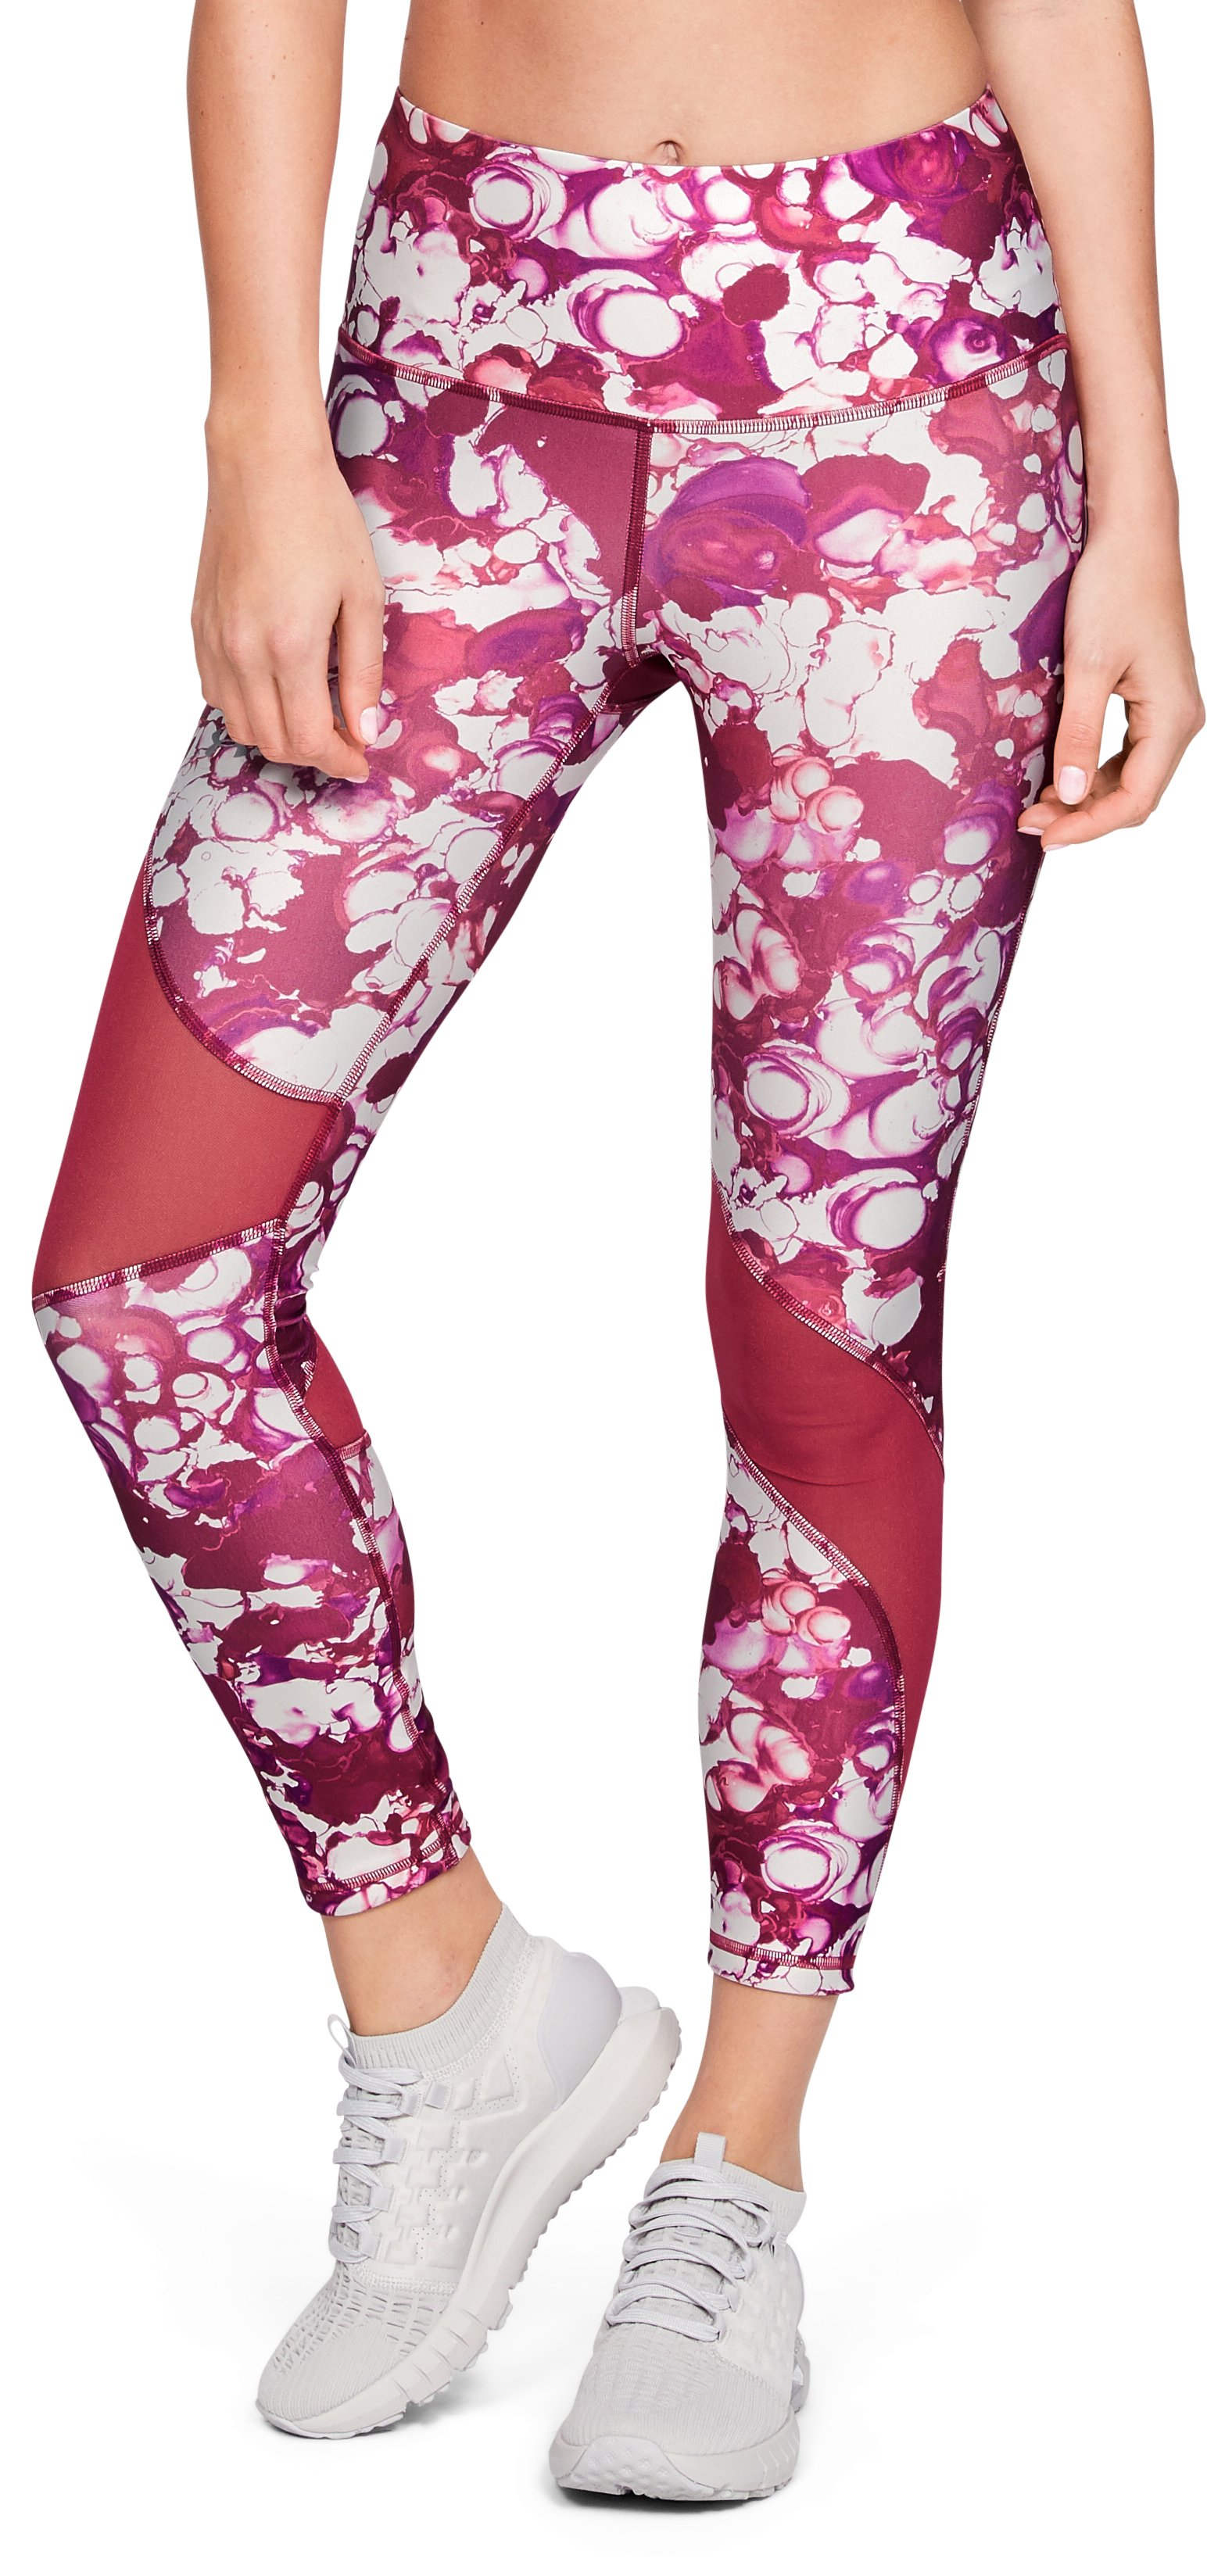 Women's HeatGear® Armour Ankle Crop Print, Impulse Pink, , Impulse Pink, Click to view full size